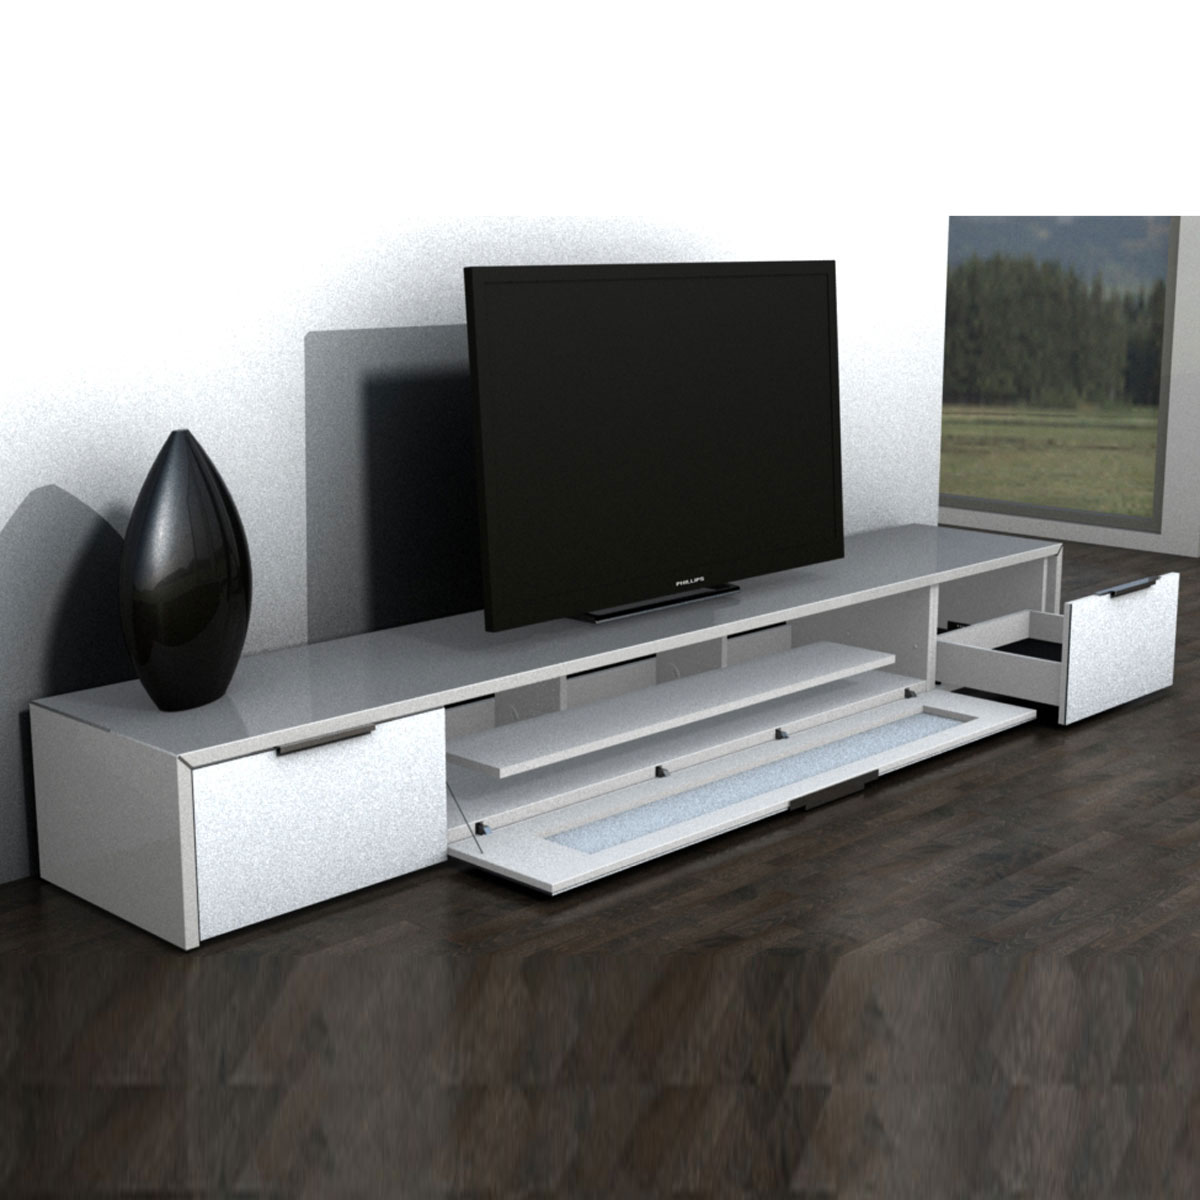 jahnke tv lowboard tl inspirierendes design f r wohnm bel. Black Bedroom Furniture Sets. Home Design Ideas